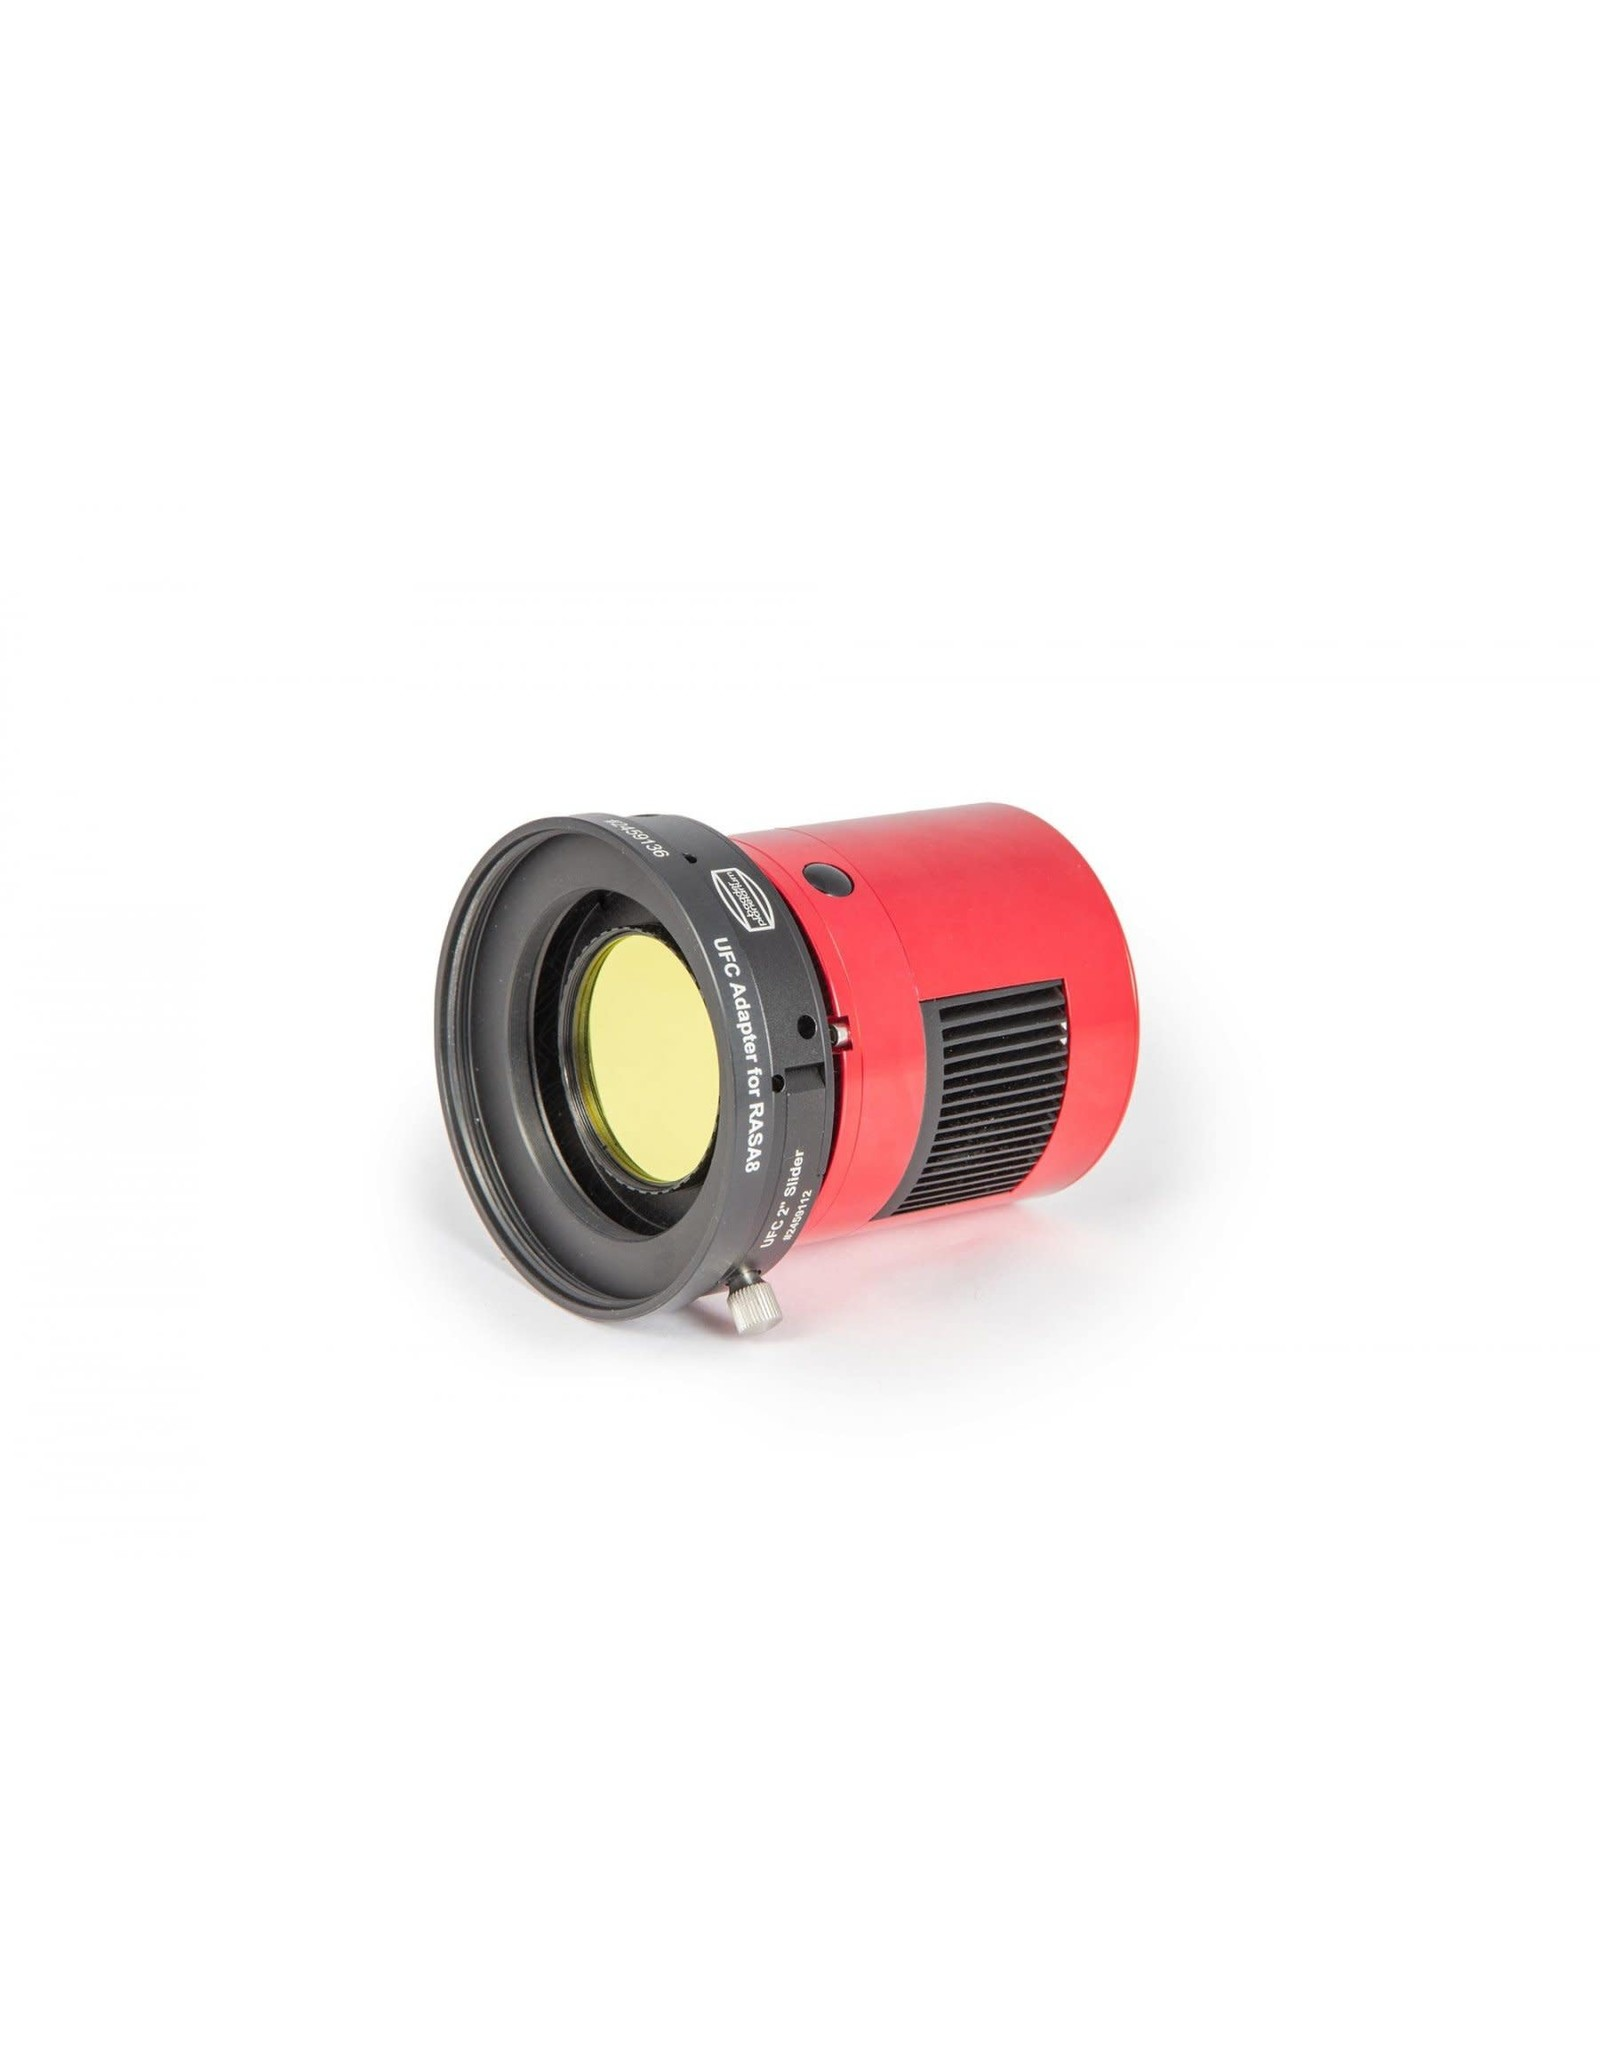 Baader Planetarium Baader UFC T-2 (w) Camera-Adapter for ASI Cameras with T-2 (m) Thread, (Optical Height: 8.5 mm)